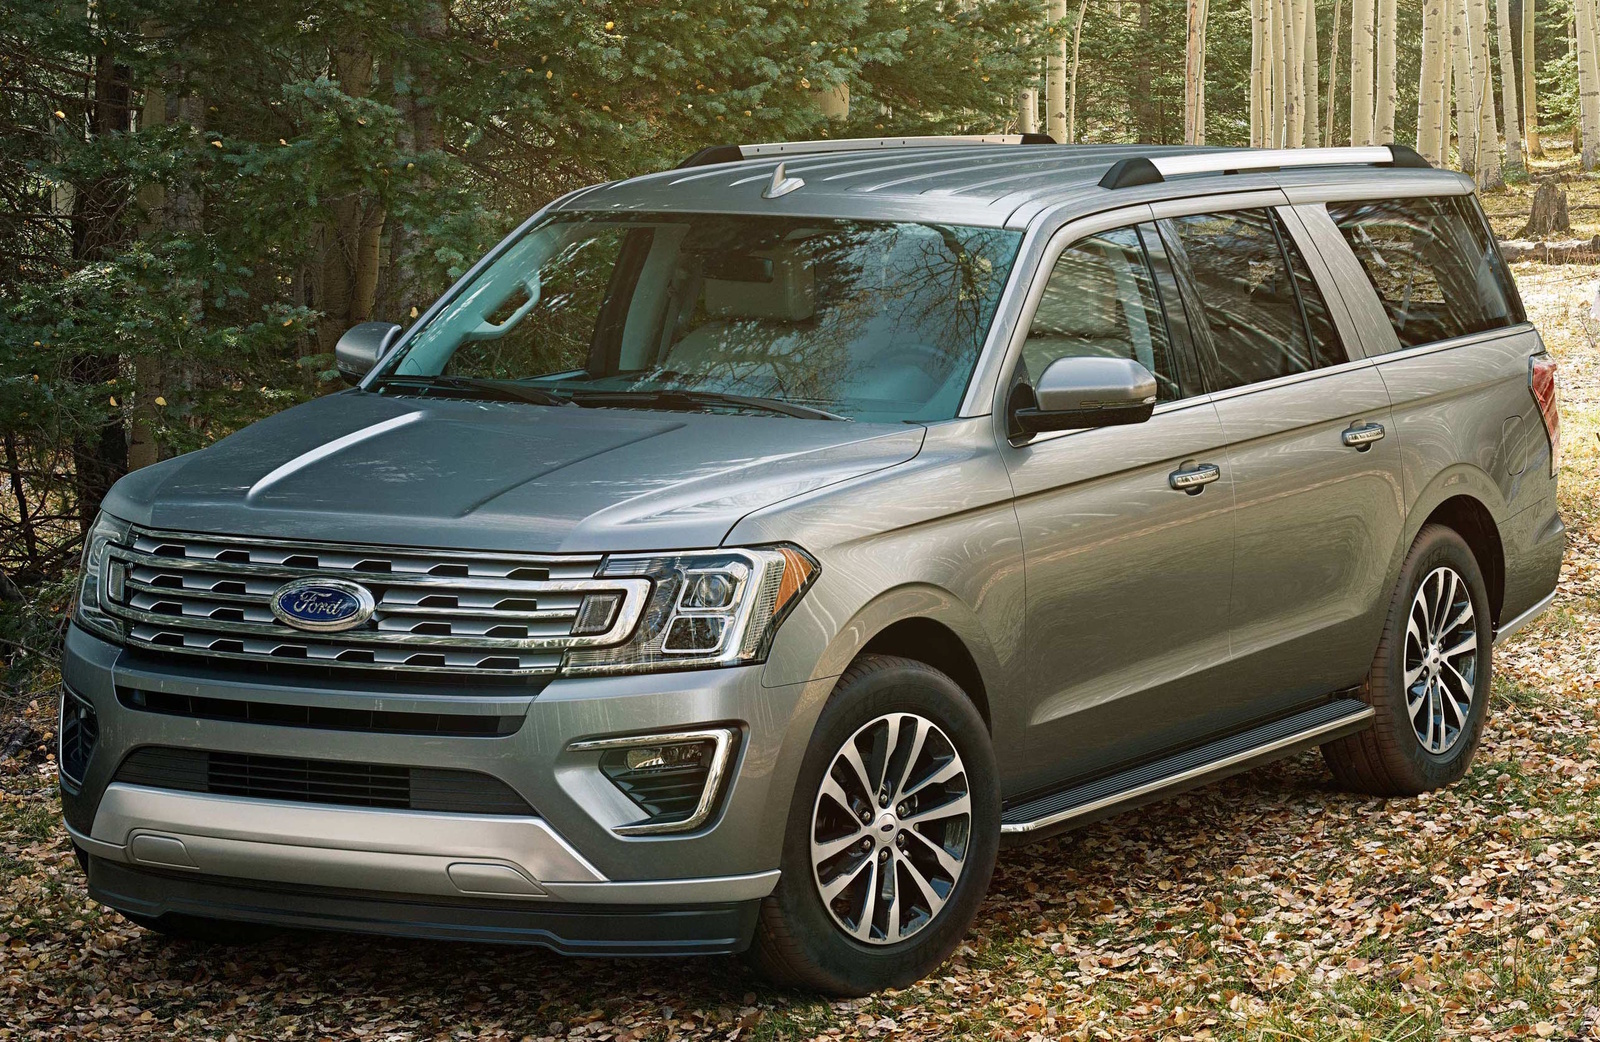 2018 Ford Expedition - Overview - CarGurus